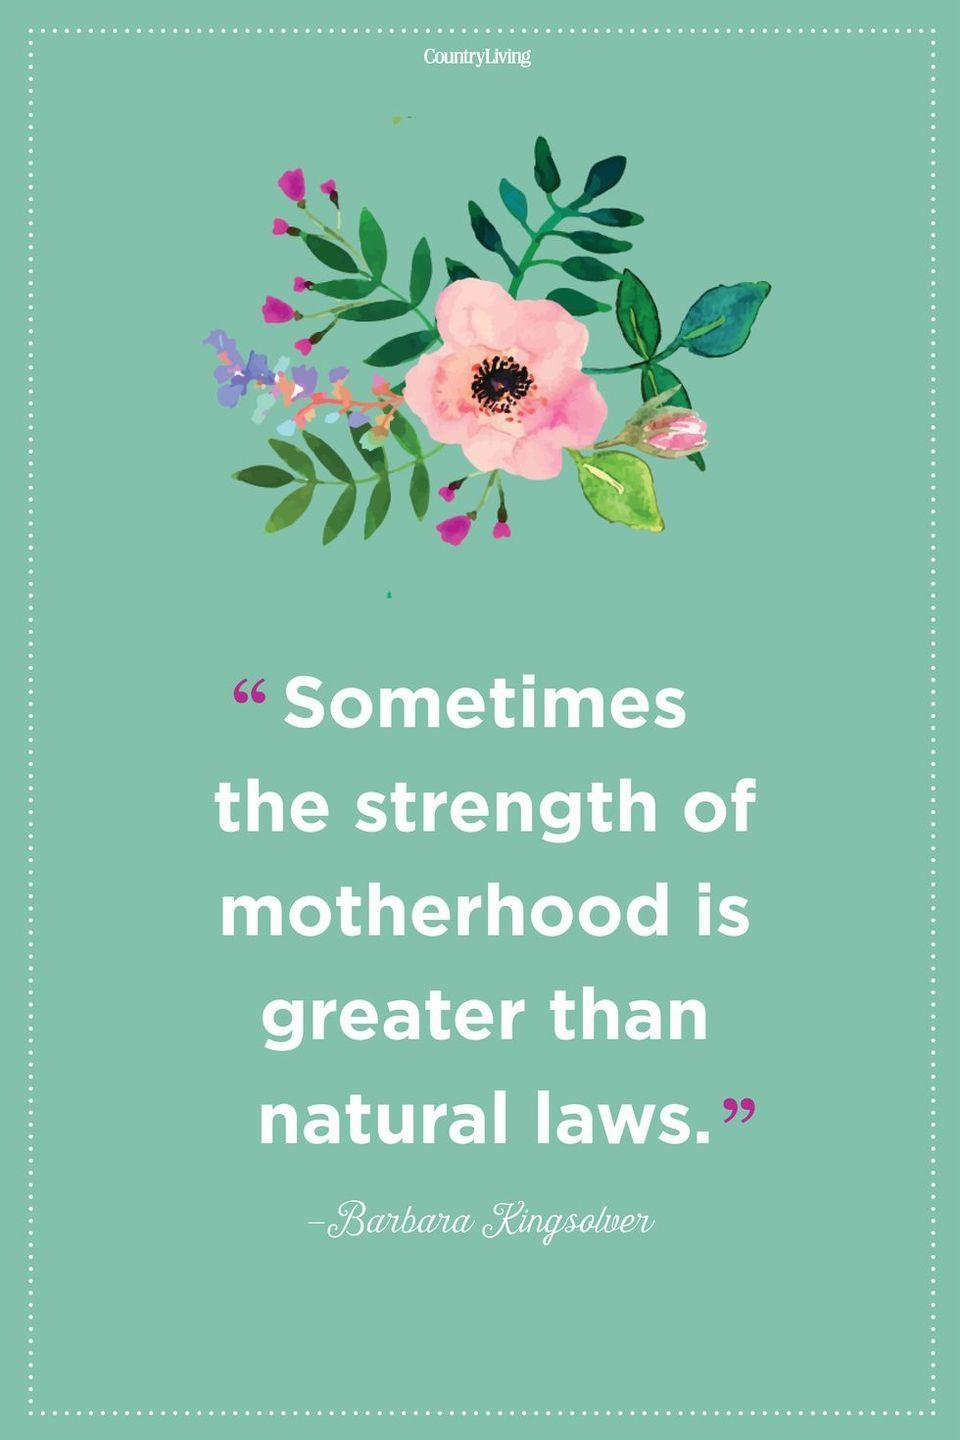 """<p>""""Sometimes the strength of motherhood is greater than natural laws.""""</p>"""